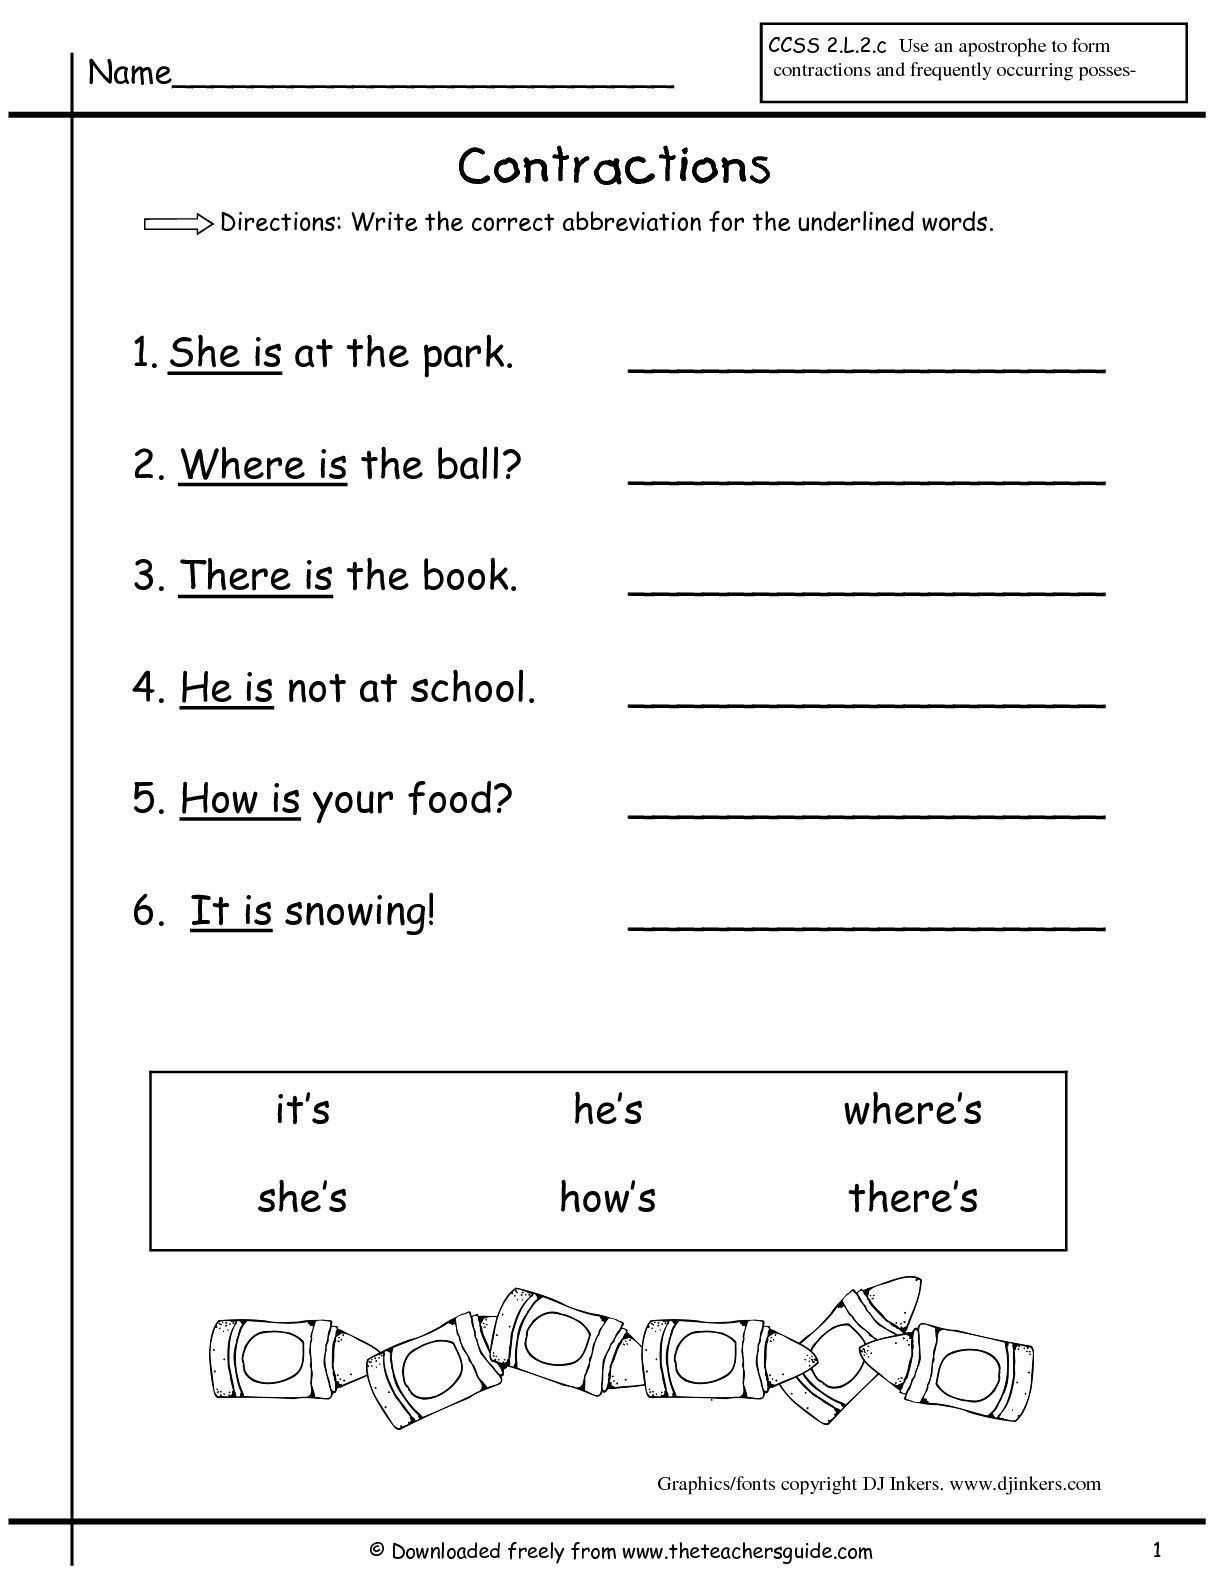 7th Grade Science Worksheets Pdf Multiplication Exercises Vintage Coloring Pages Science